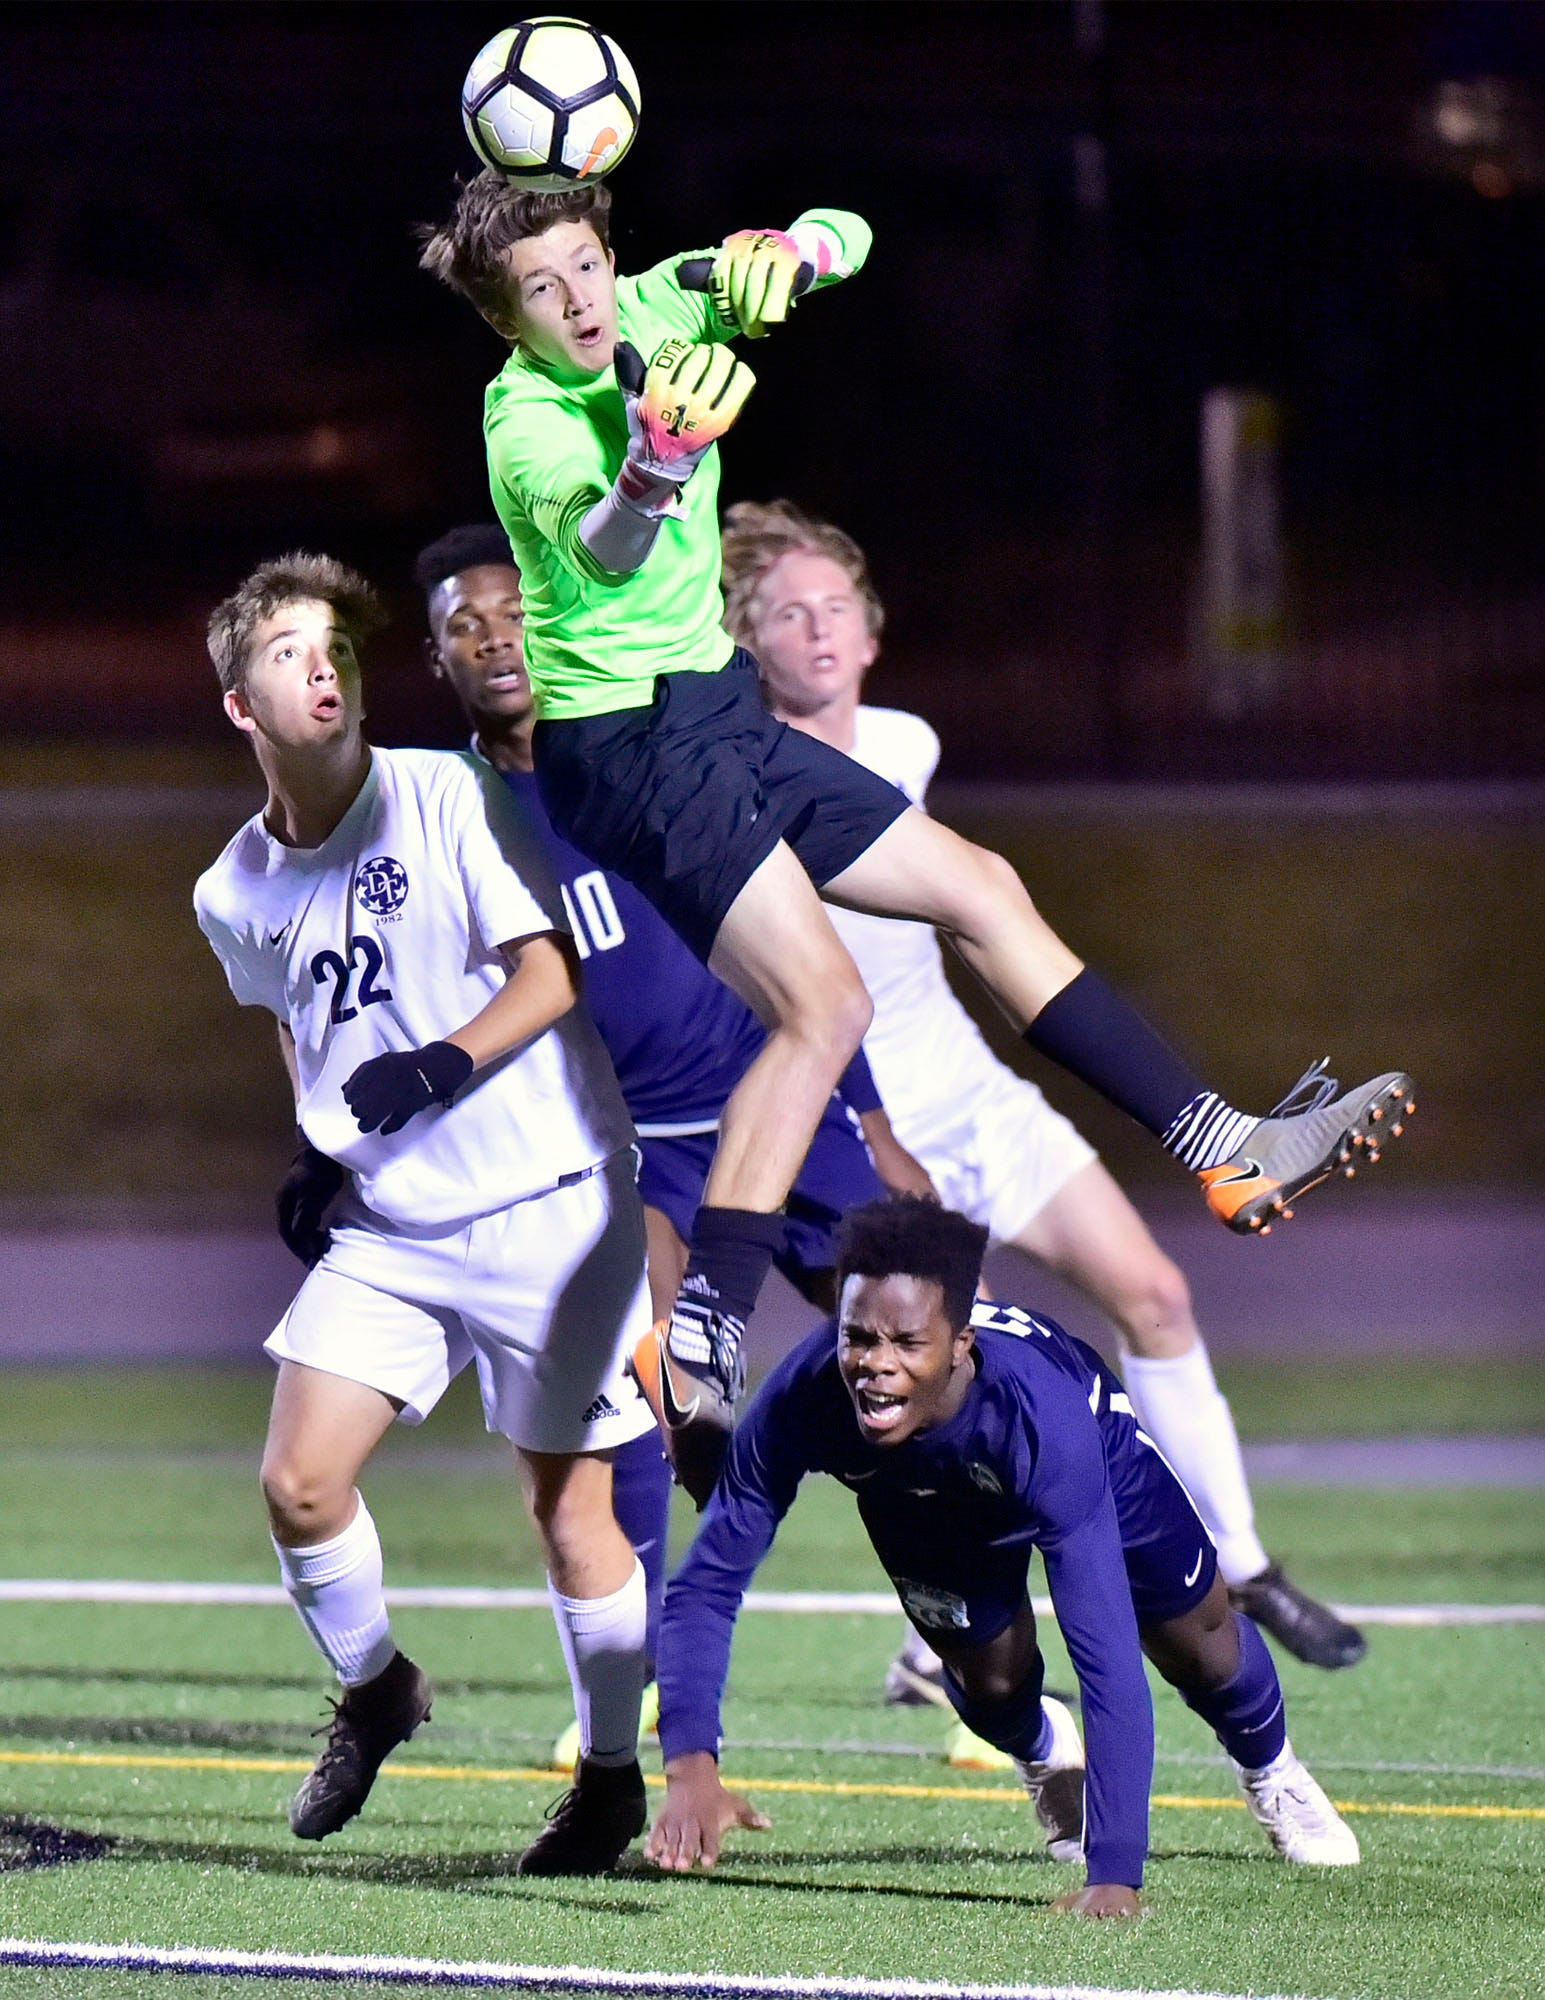 Keeper Gavin Conners, front, leaps to save the ball. Chambersburg lost a first round D3 soccer match to Dallastown 2-1 on Tuesday, Oct. 23, 2018.